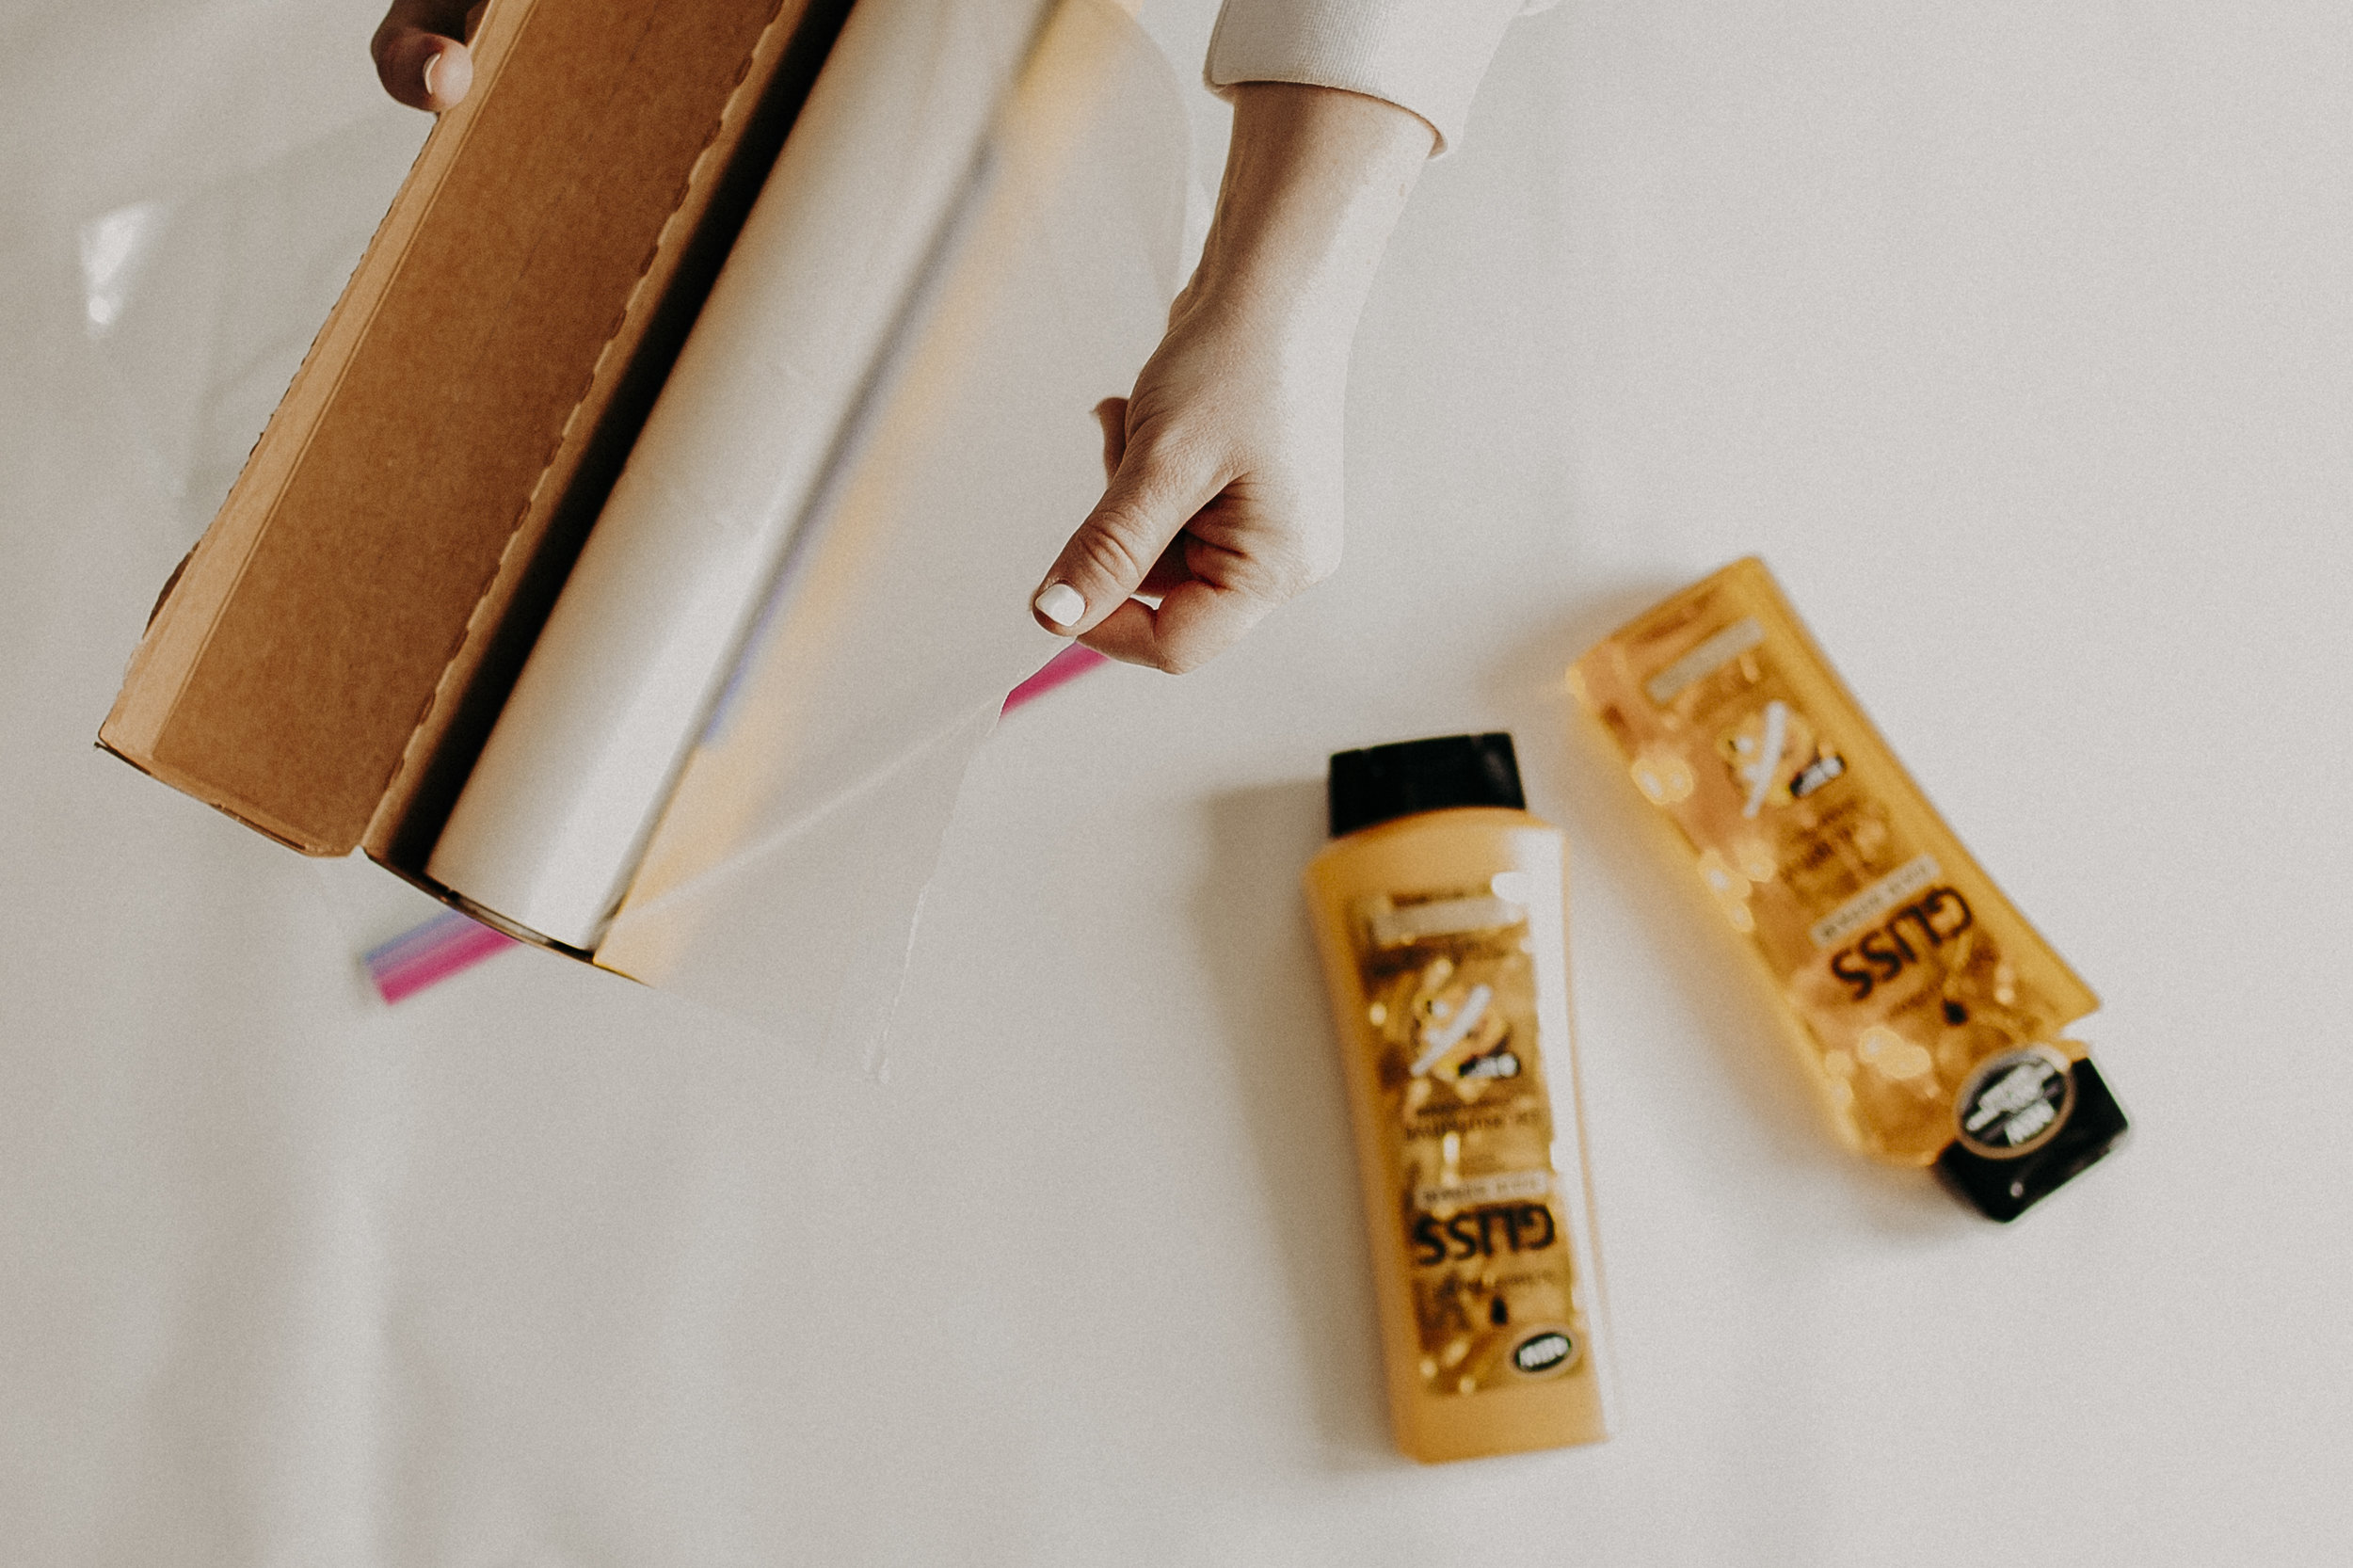 My second tip is how to properly pack your haircare products. There's almost nothing worse than starting a trip, only to realize your shampoo has exploded during flight. You can easily prevent that from happening by applying some plastic food wrap over the opening of your shampoo bottle, then re-attaching your lid.